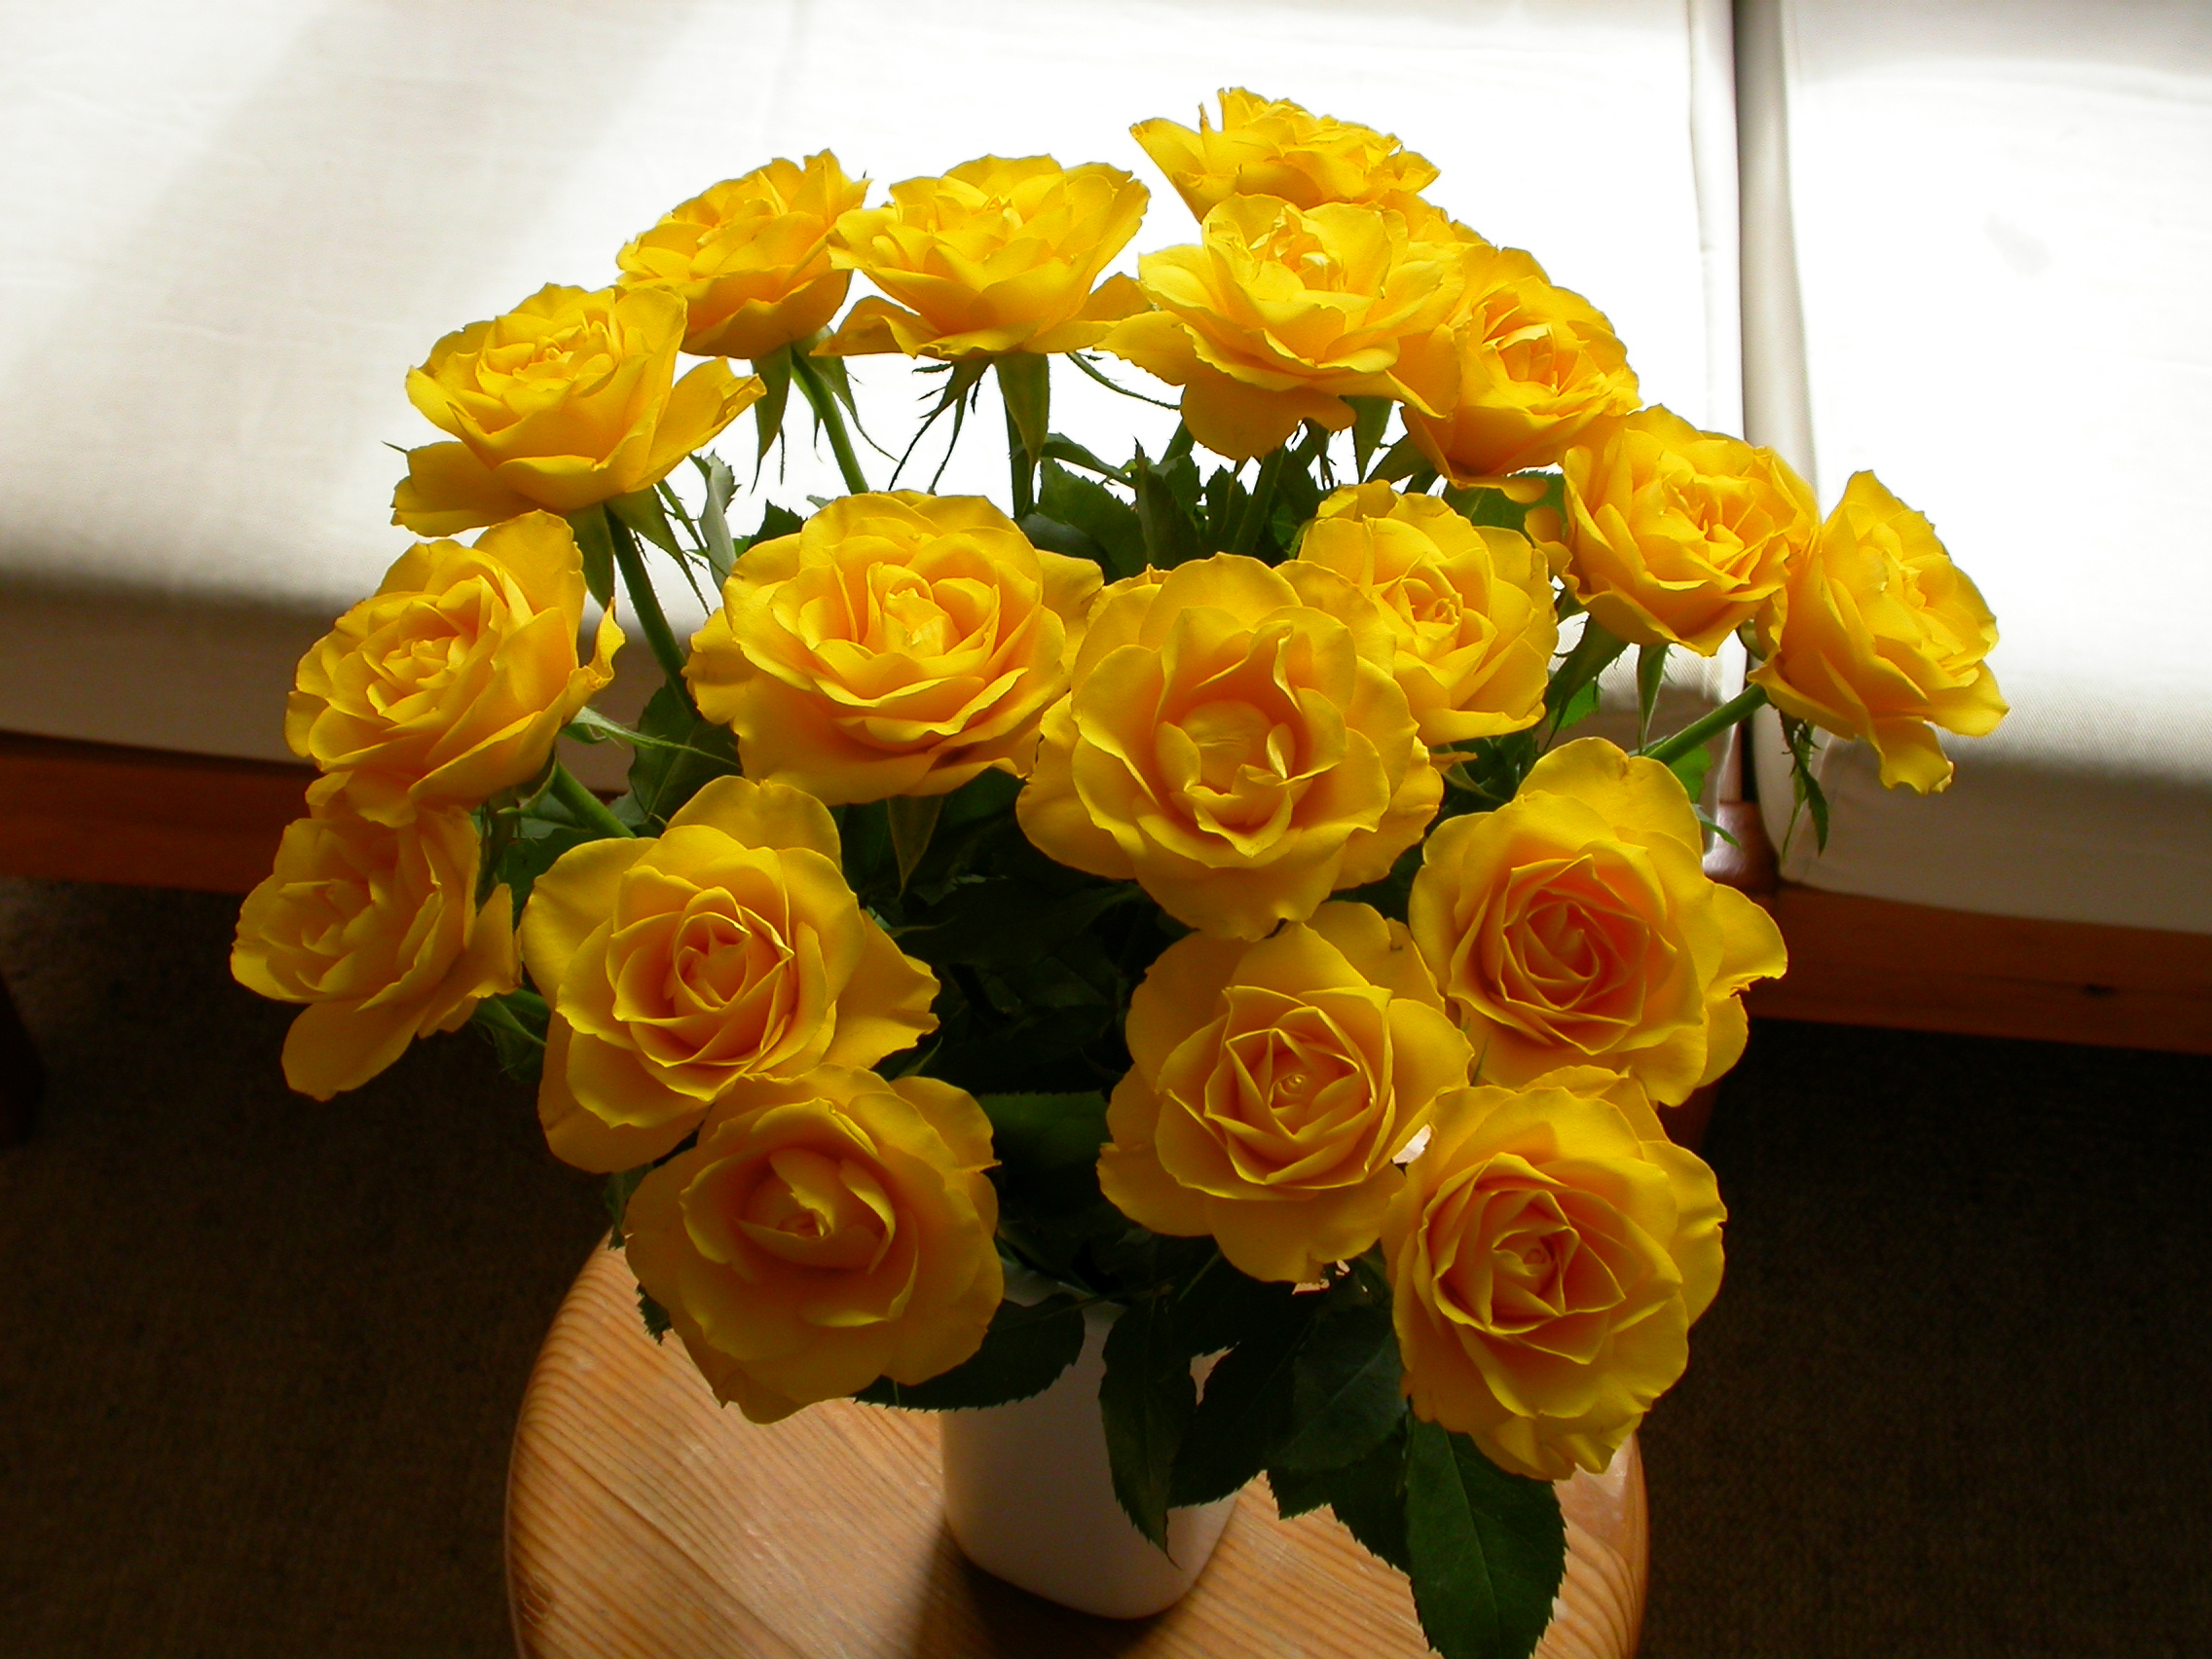 paul flowers rose roses yellow bouquet bunch of flowers